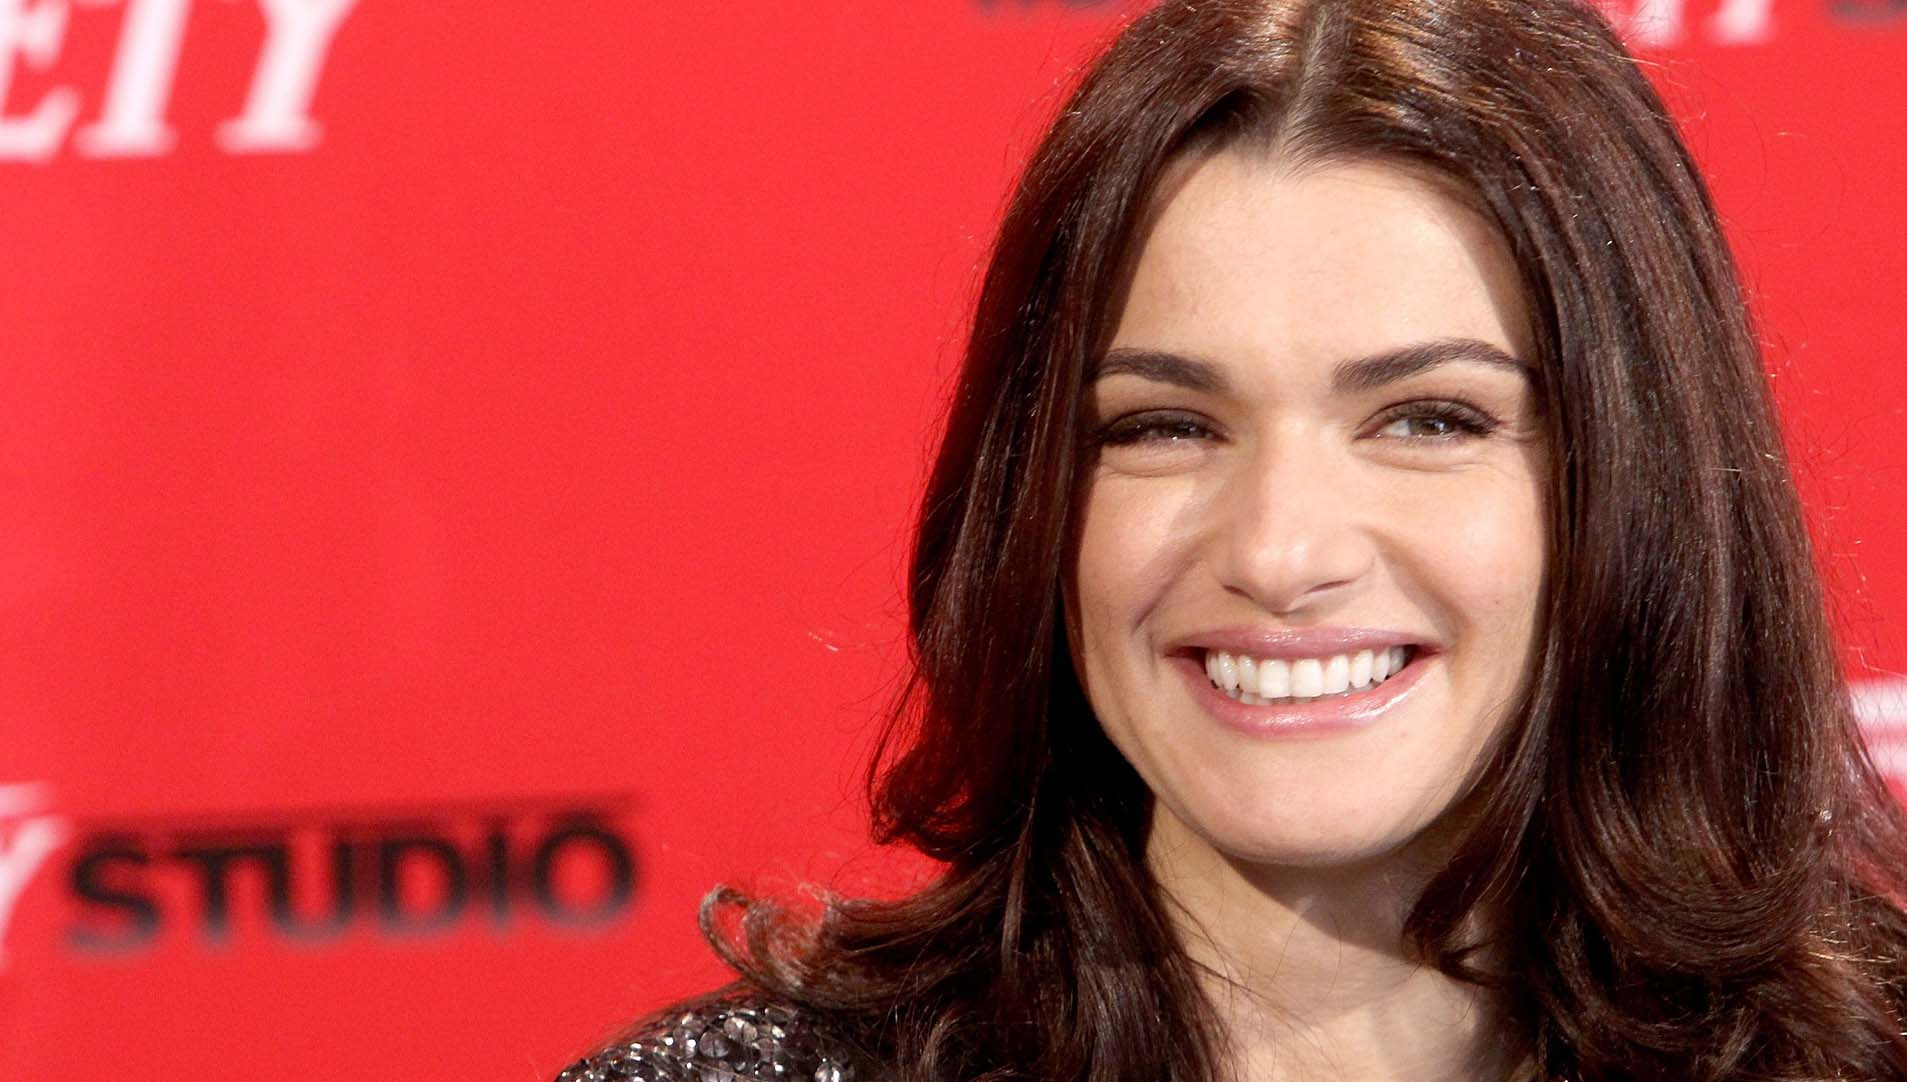 Rachel Weisz joins Marvel's Black Widow